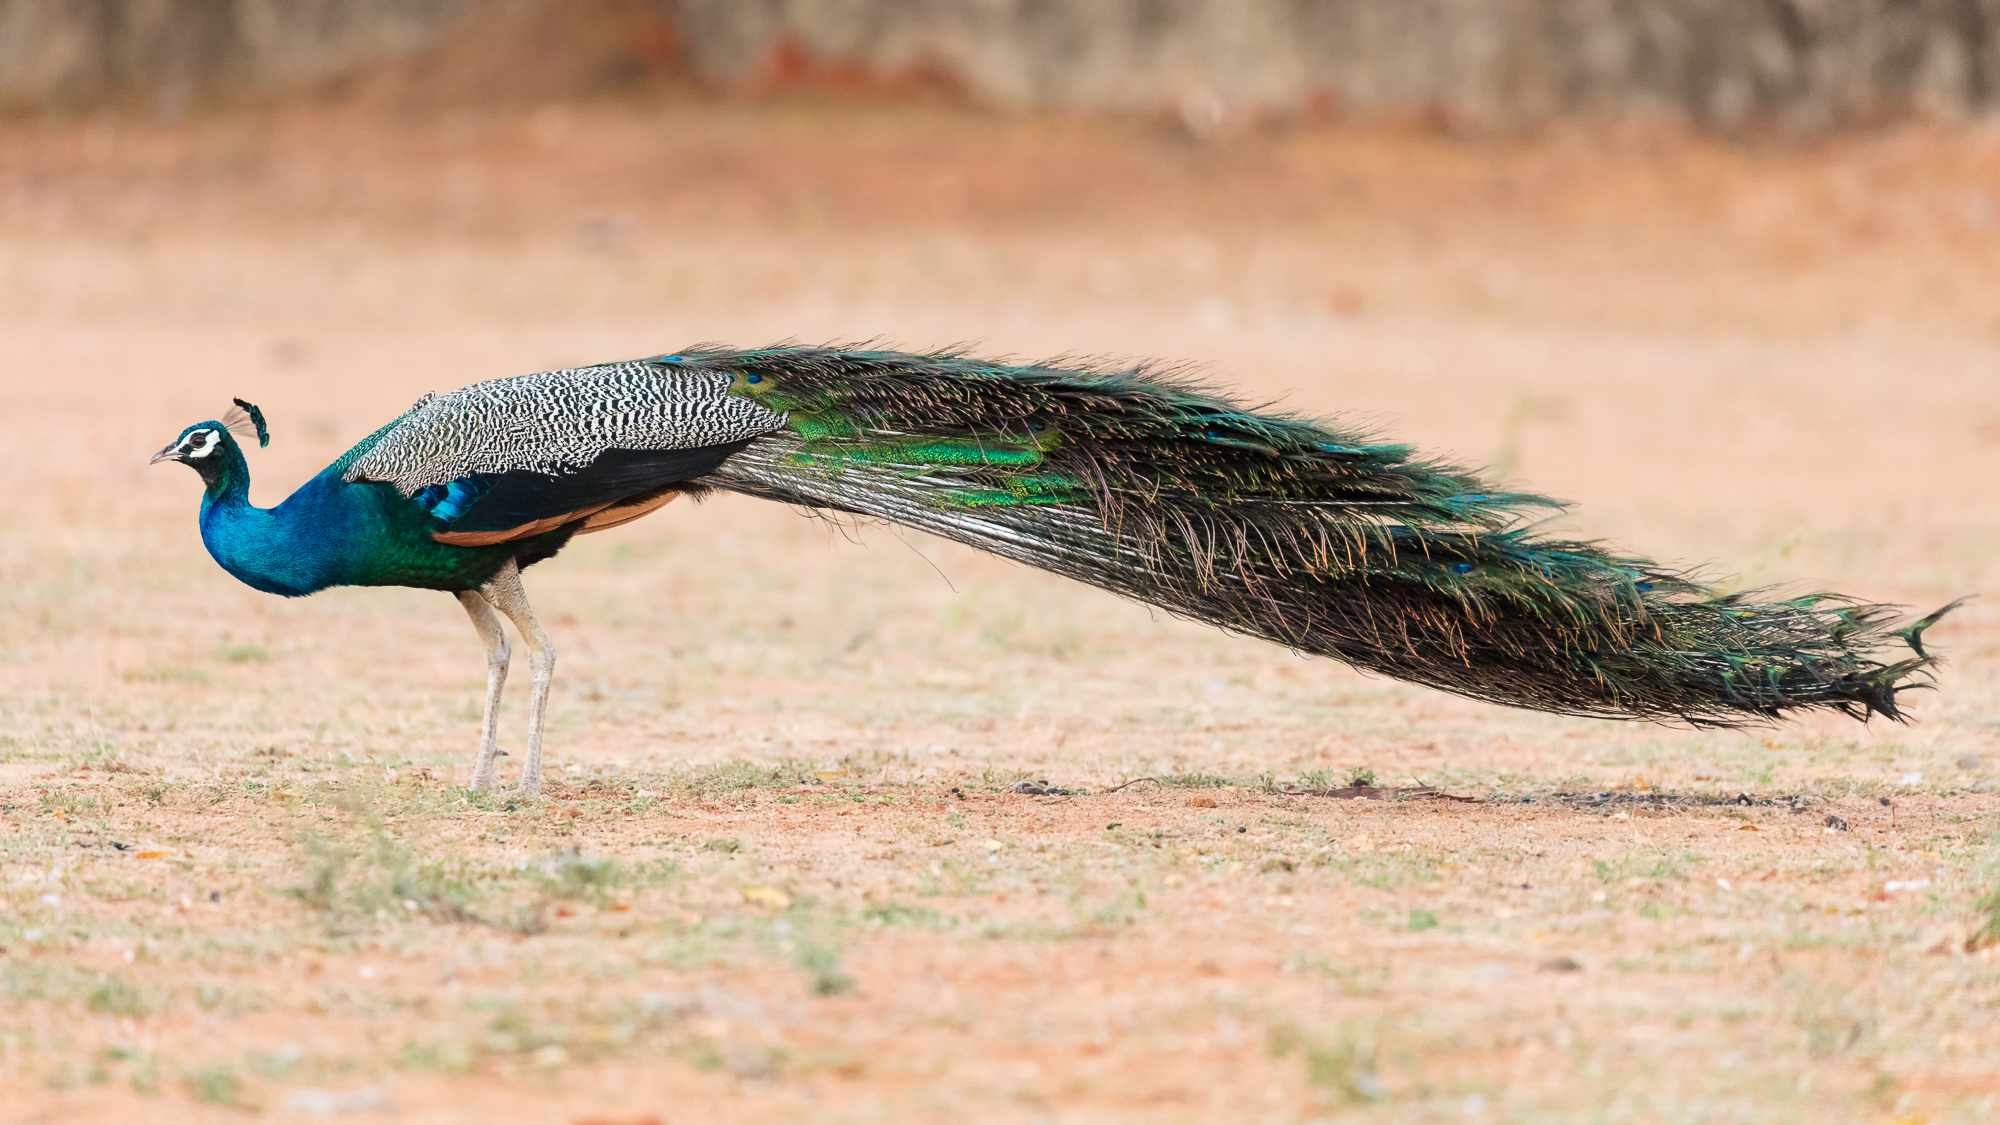 An indian peacock struts along open ground looking for food, Tamil Nadu, India.